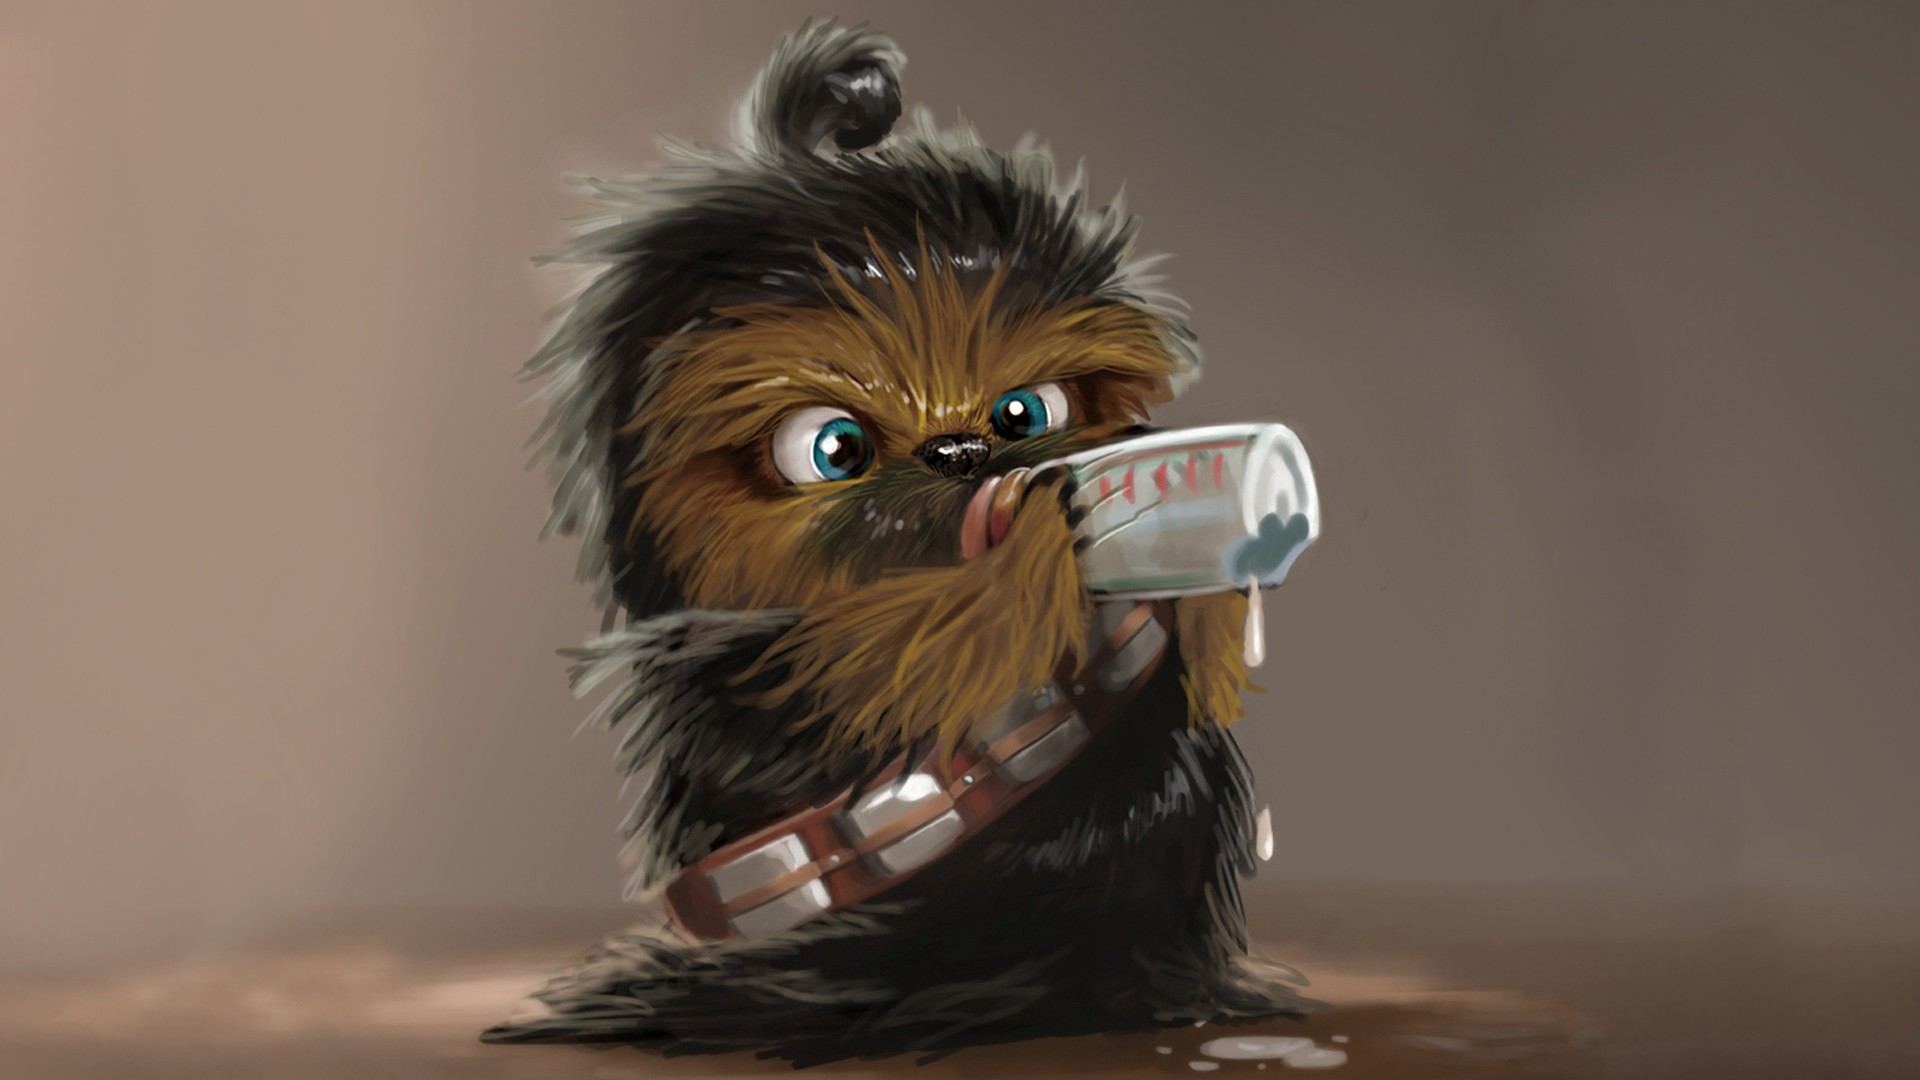 1920x1080  Wallpaper star wars, chewbacca, drink, baby